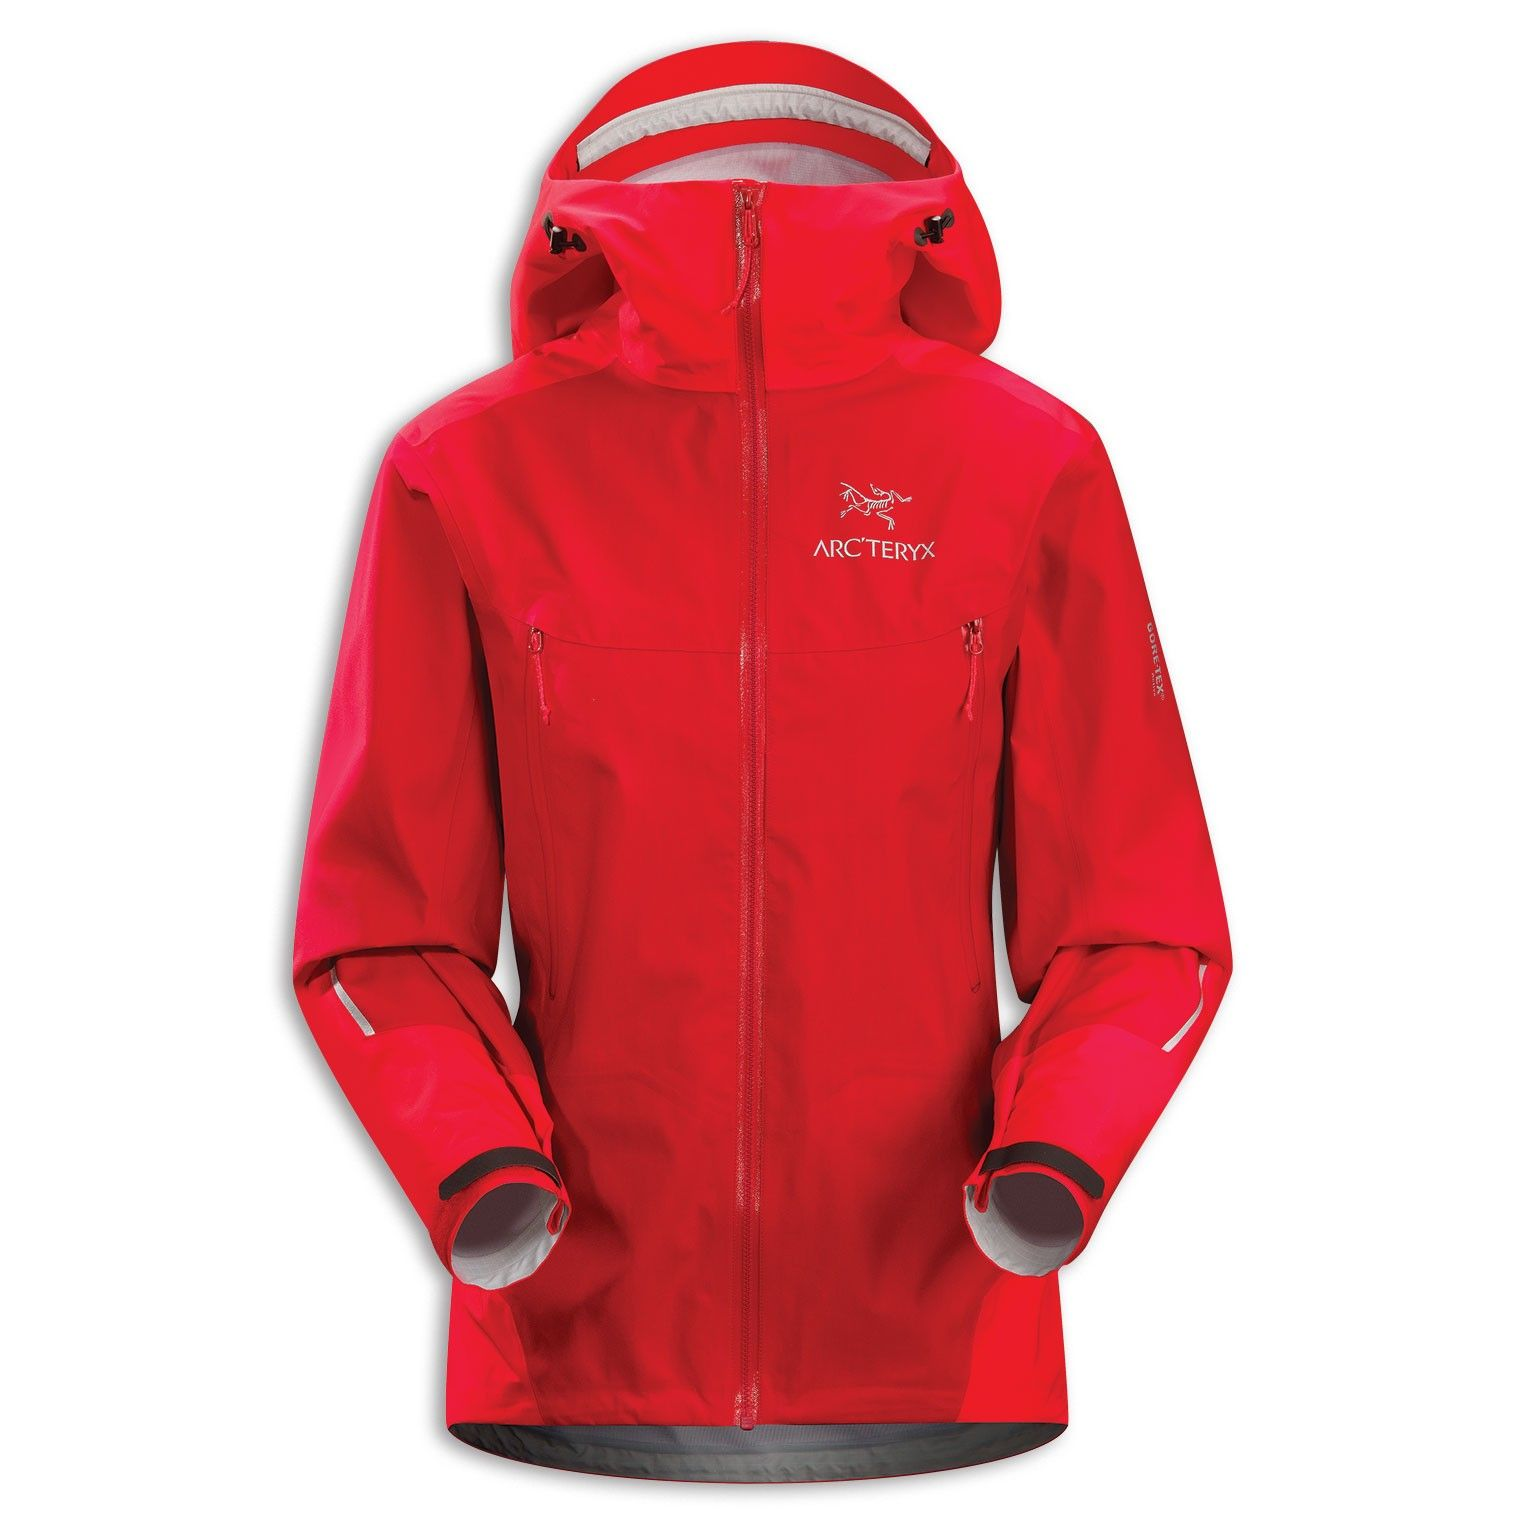 WOMEN'S ARC'TERYX GORE TEX BETA FL JACKET | Jackets for